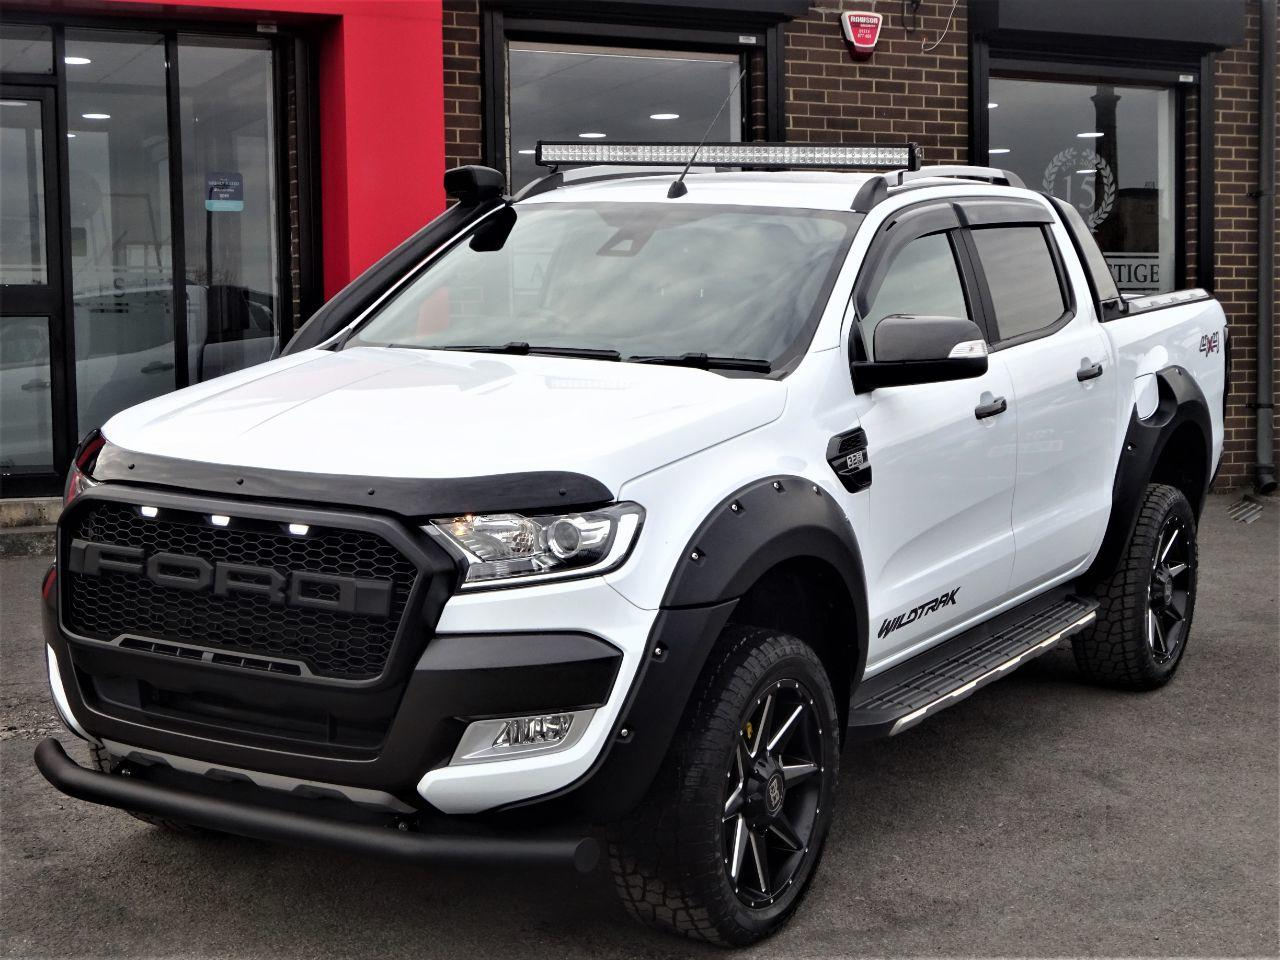 Ford Ranger Pick Up Double Cab Wildtrak 3.2 TDCi 200 Auto ROGUE EDITION +VAT Pick Up Diesel White at Autoprestige Bradford